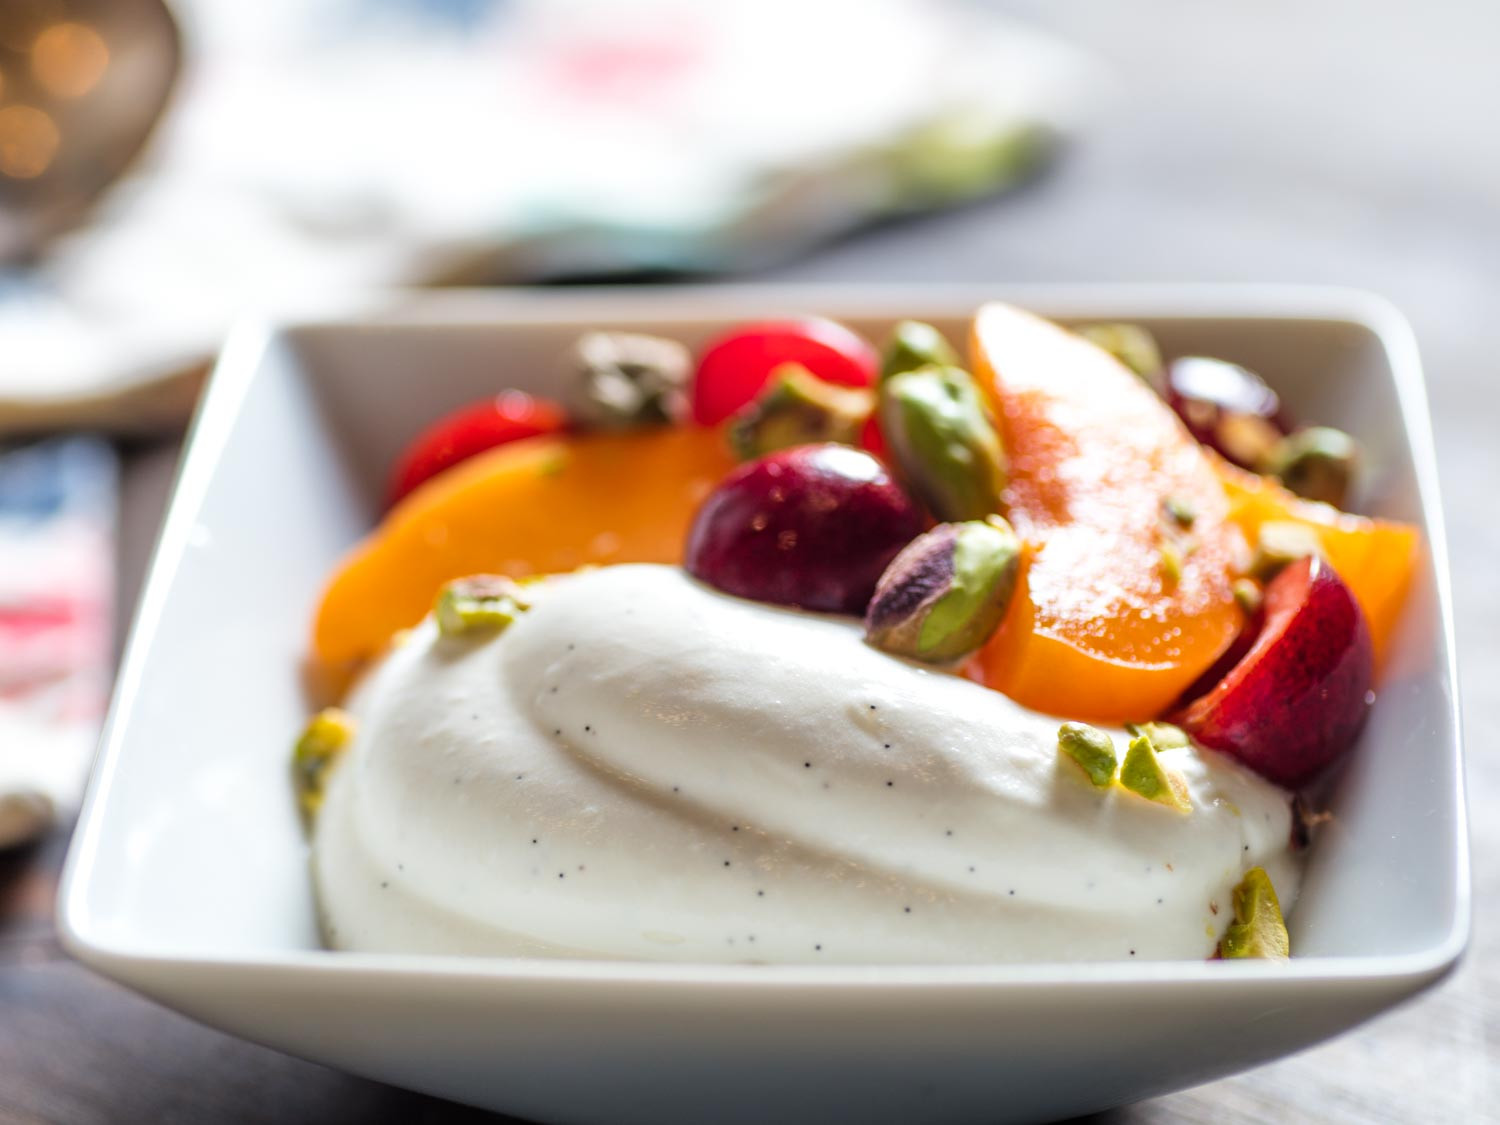 Refreshing Summer Desserts  Make Light and Fresh Summer Desserts With Whipped Greek